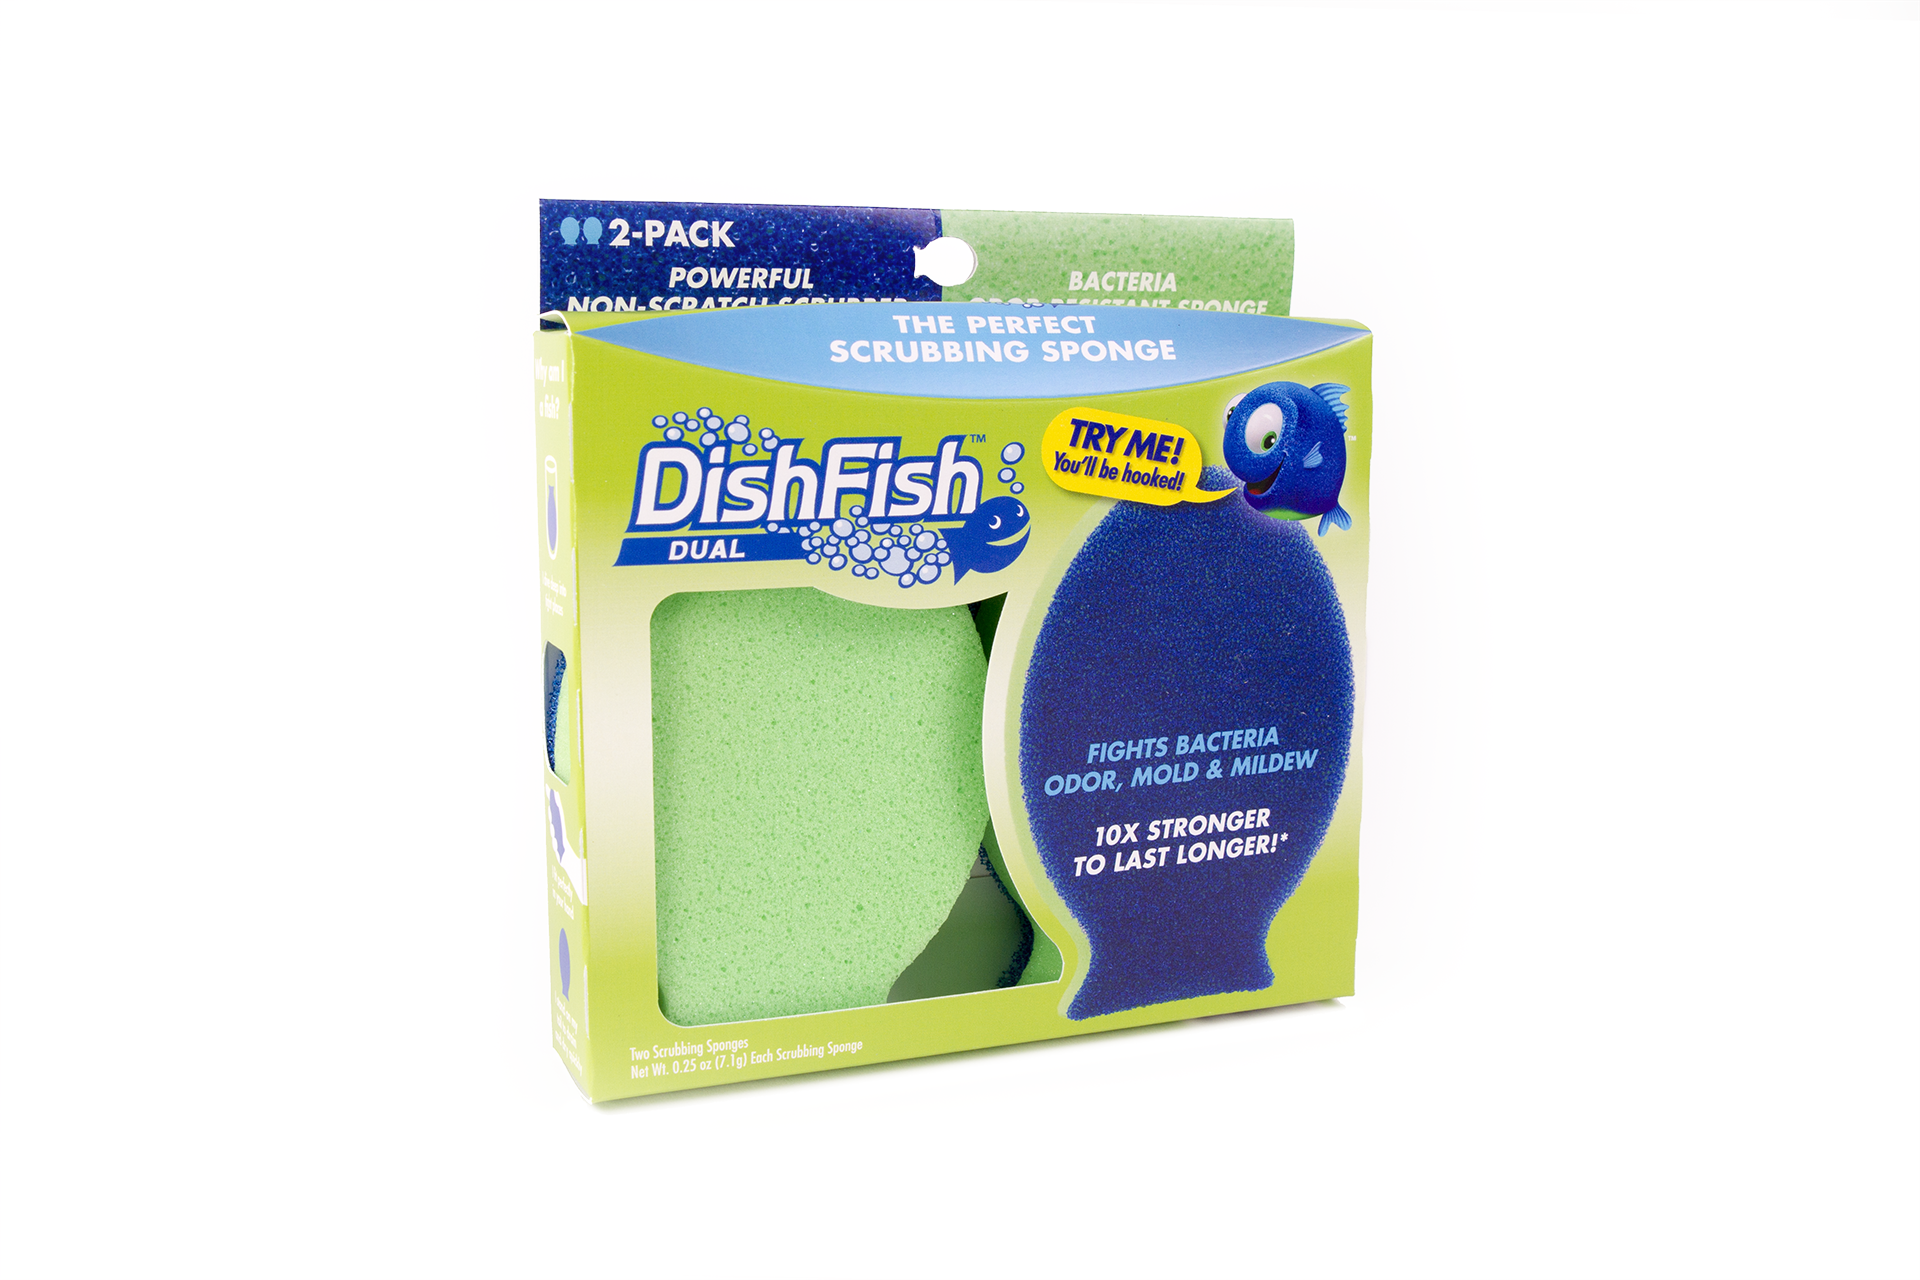 dishfish-dual-2-pack-left-side-01.png